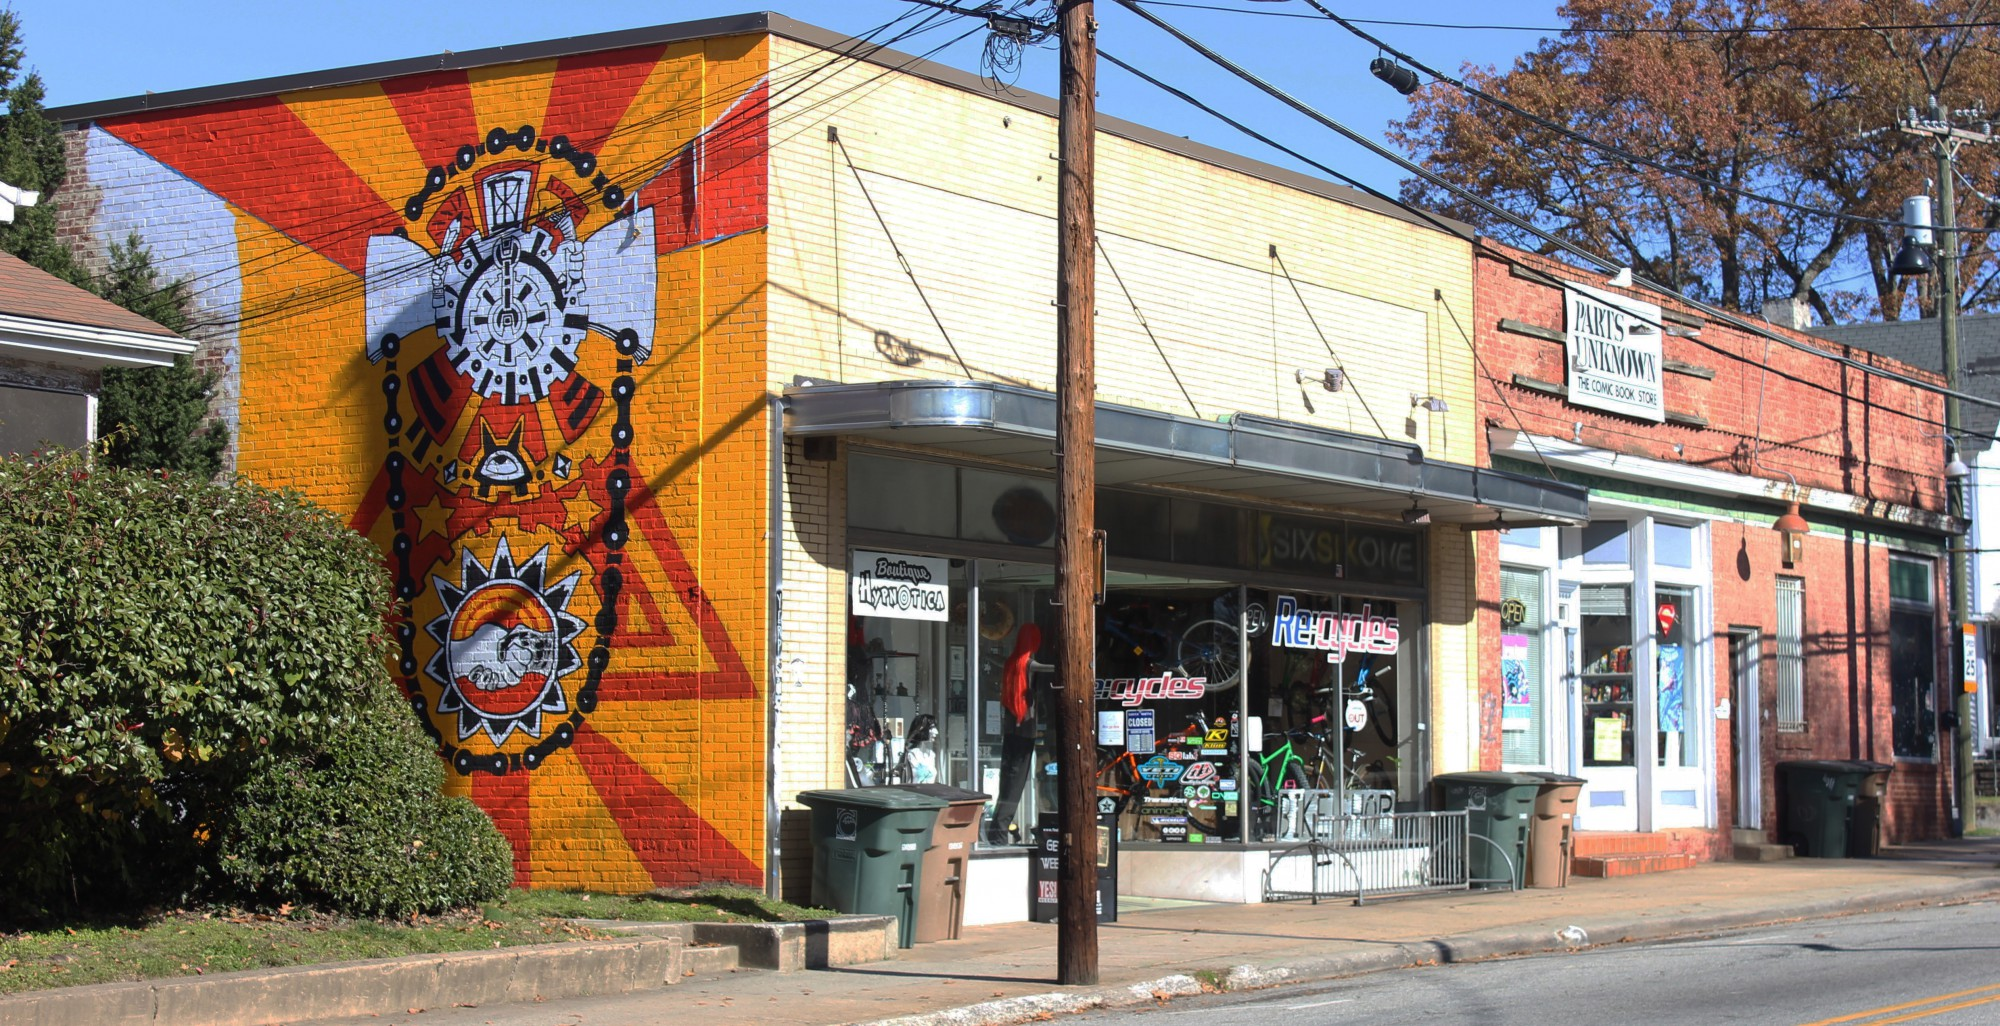 The Greensboro Mural Project